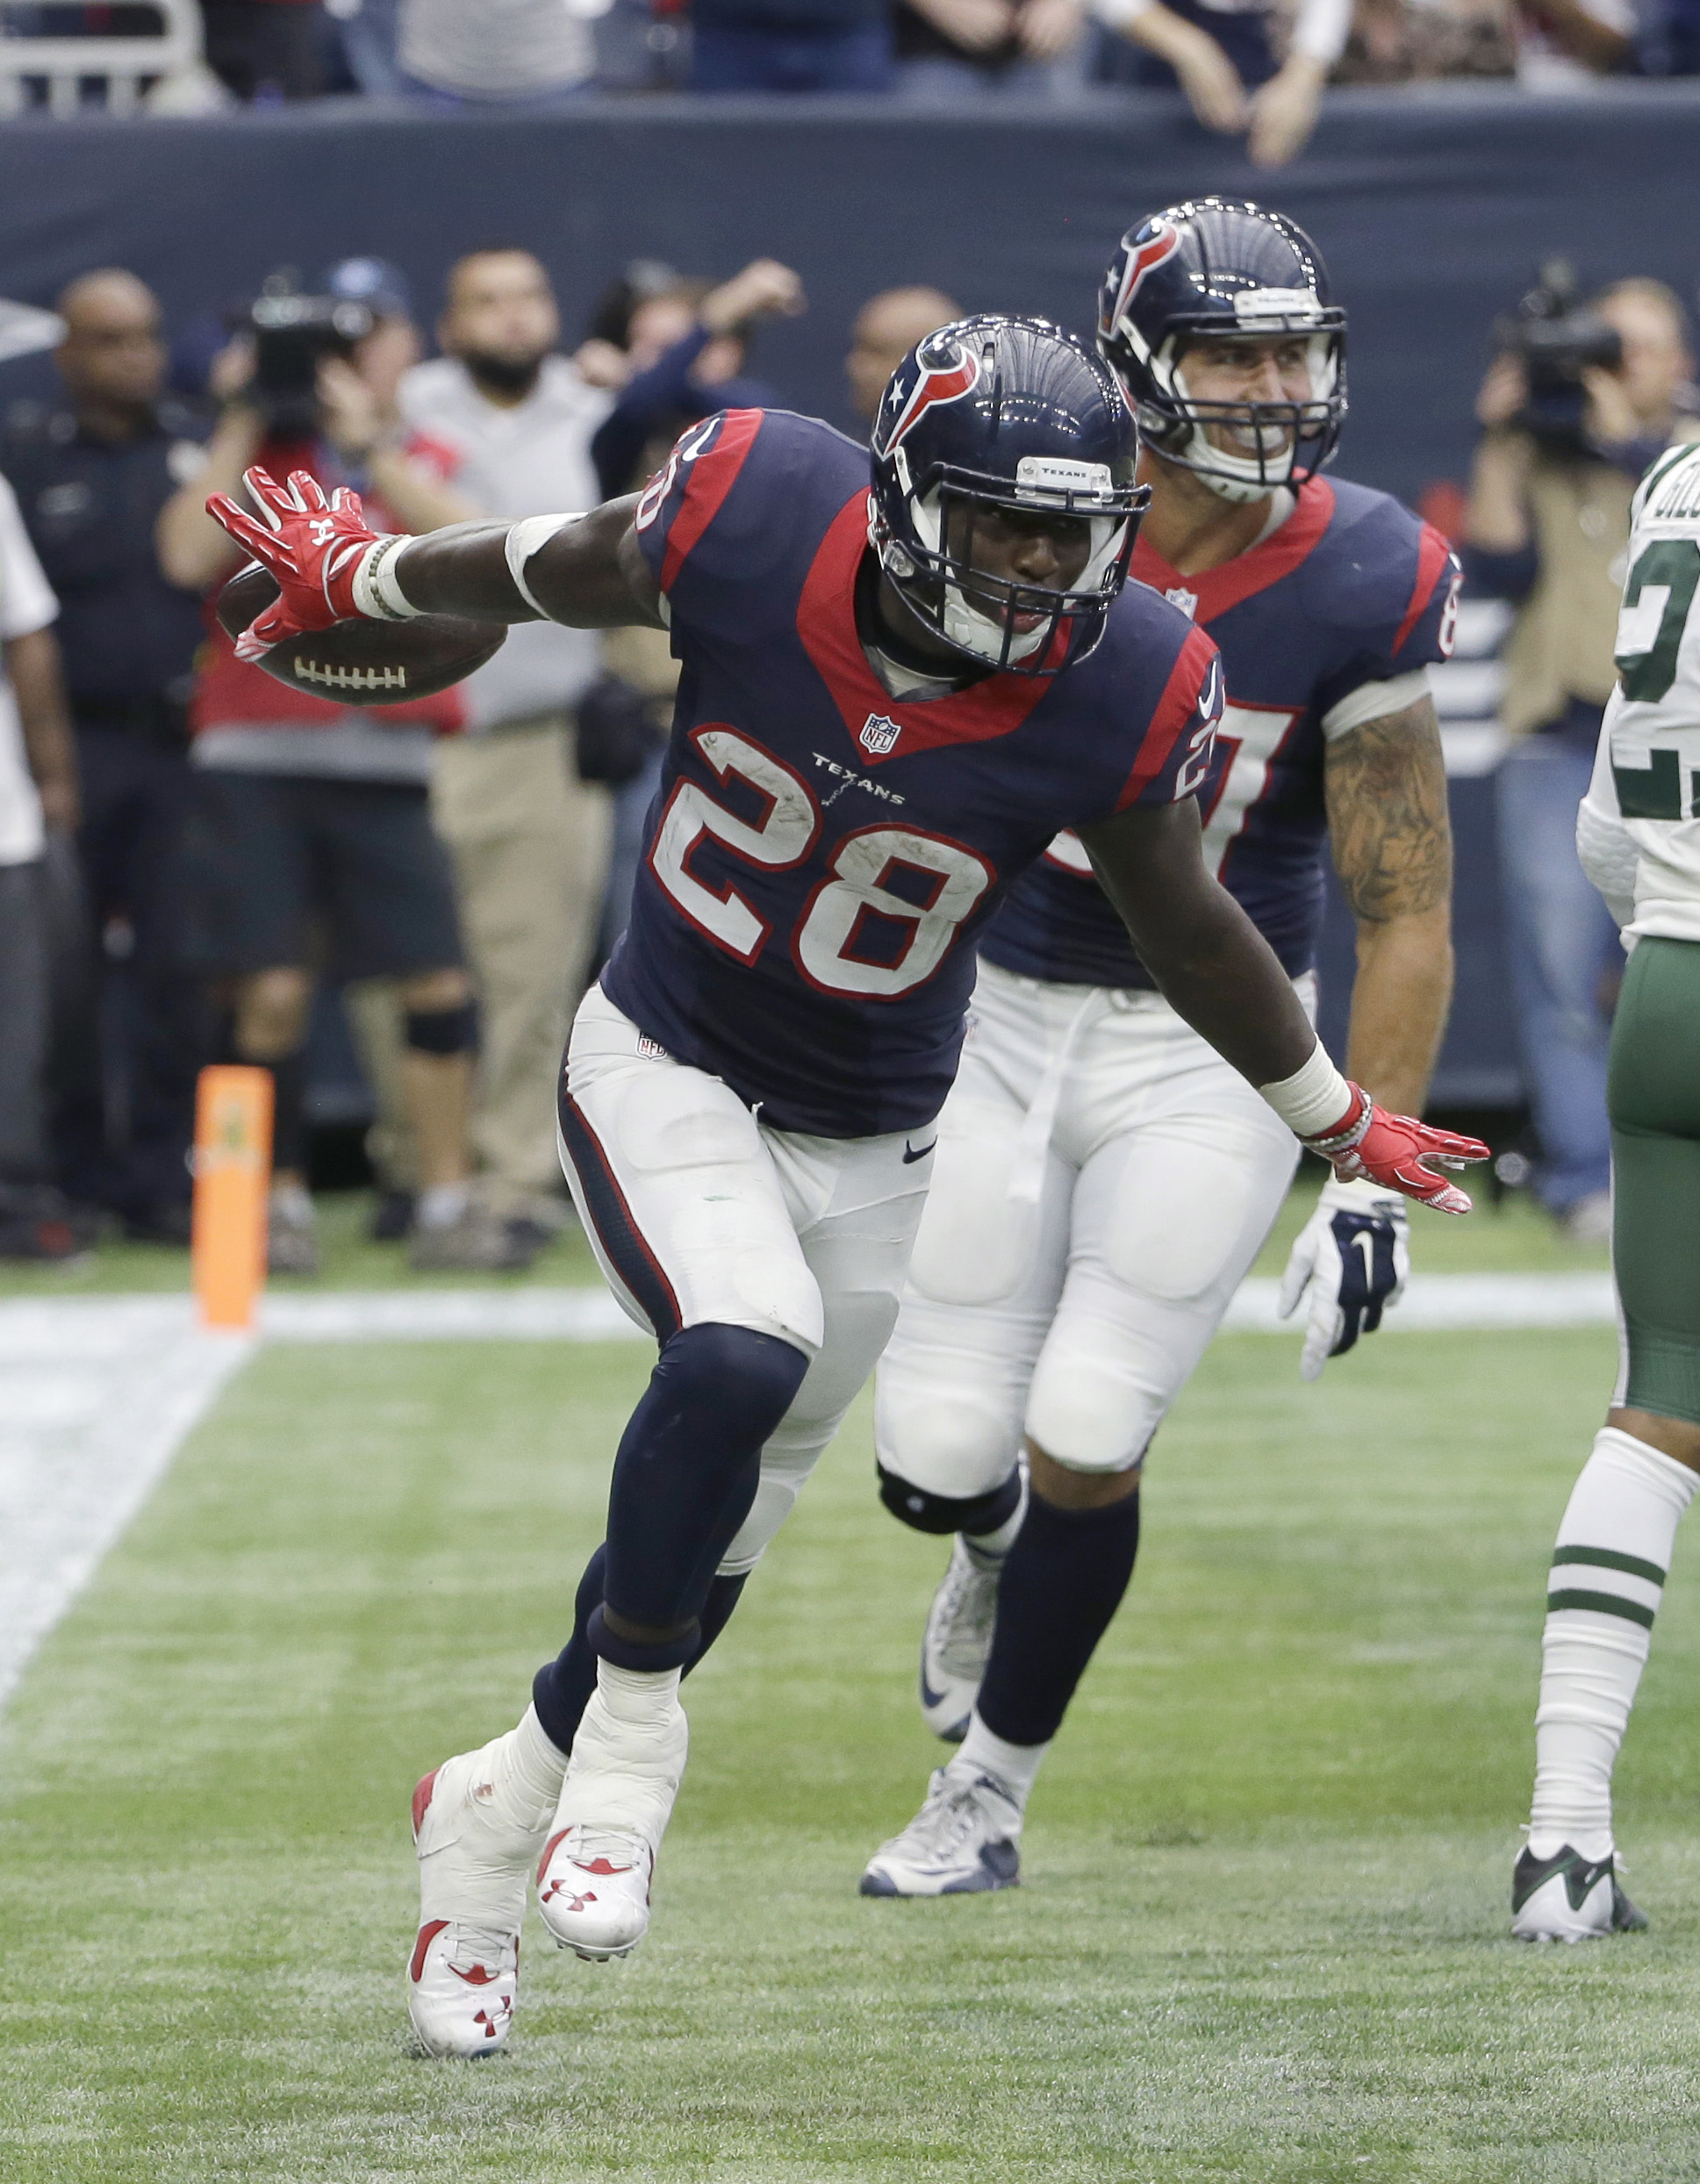 Houston Texans running back Alfred Blue (28) celebrates his touchdown catch from wide receiver Cecil Shorts during the second half of an NFL football game against the New York Jets, Sunday, Nov. 22, 2015, in Houston. (AP Photo/David J. Phillip)